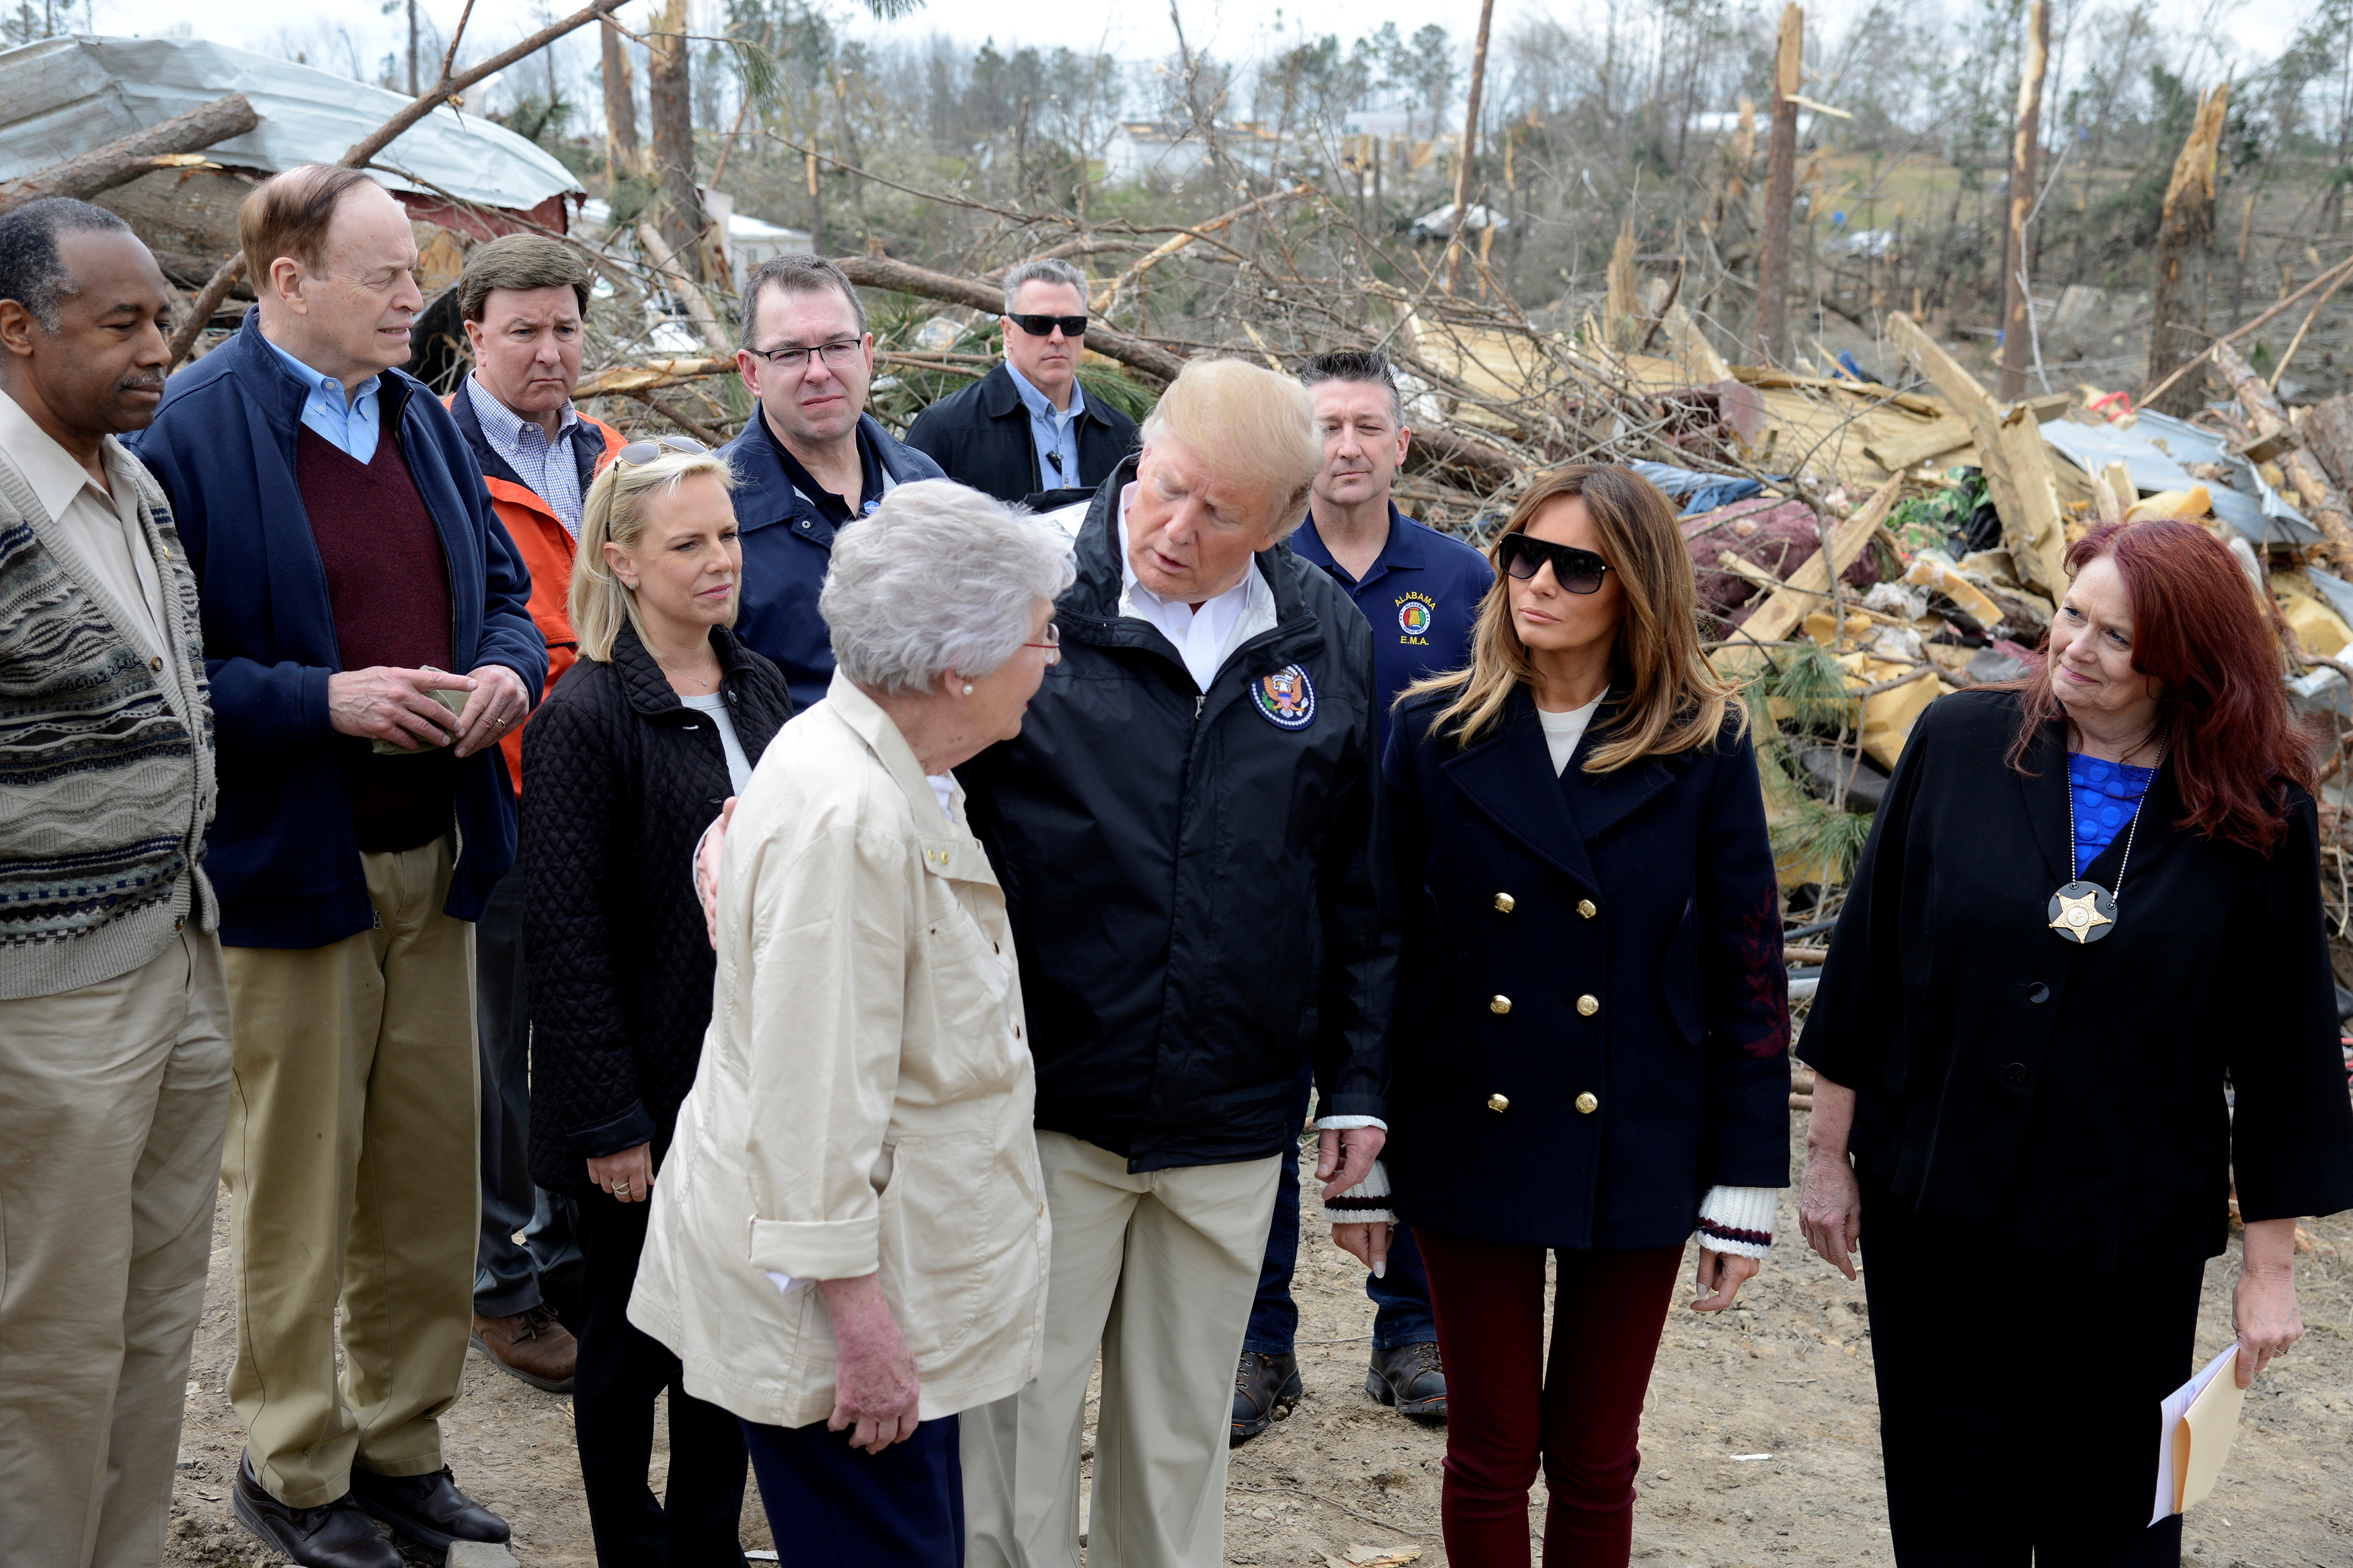 U.S. President Donald Trump and First Lady Melania Trump chat with Alabama Gov. Kay Ivey as they survey damage by a tornado with a FEMA official, along with HHS Secretary Ben Carson, Sen. Richard Shelby (R-AL) and DHS Secretary Kirstjen Nielsen, in Beauregard, Alabama, U.S., March 8, 2019. REUTERS/Mike Theiler